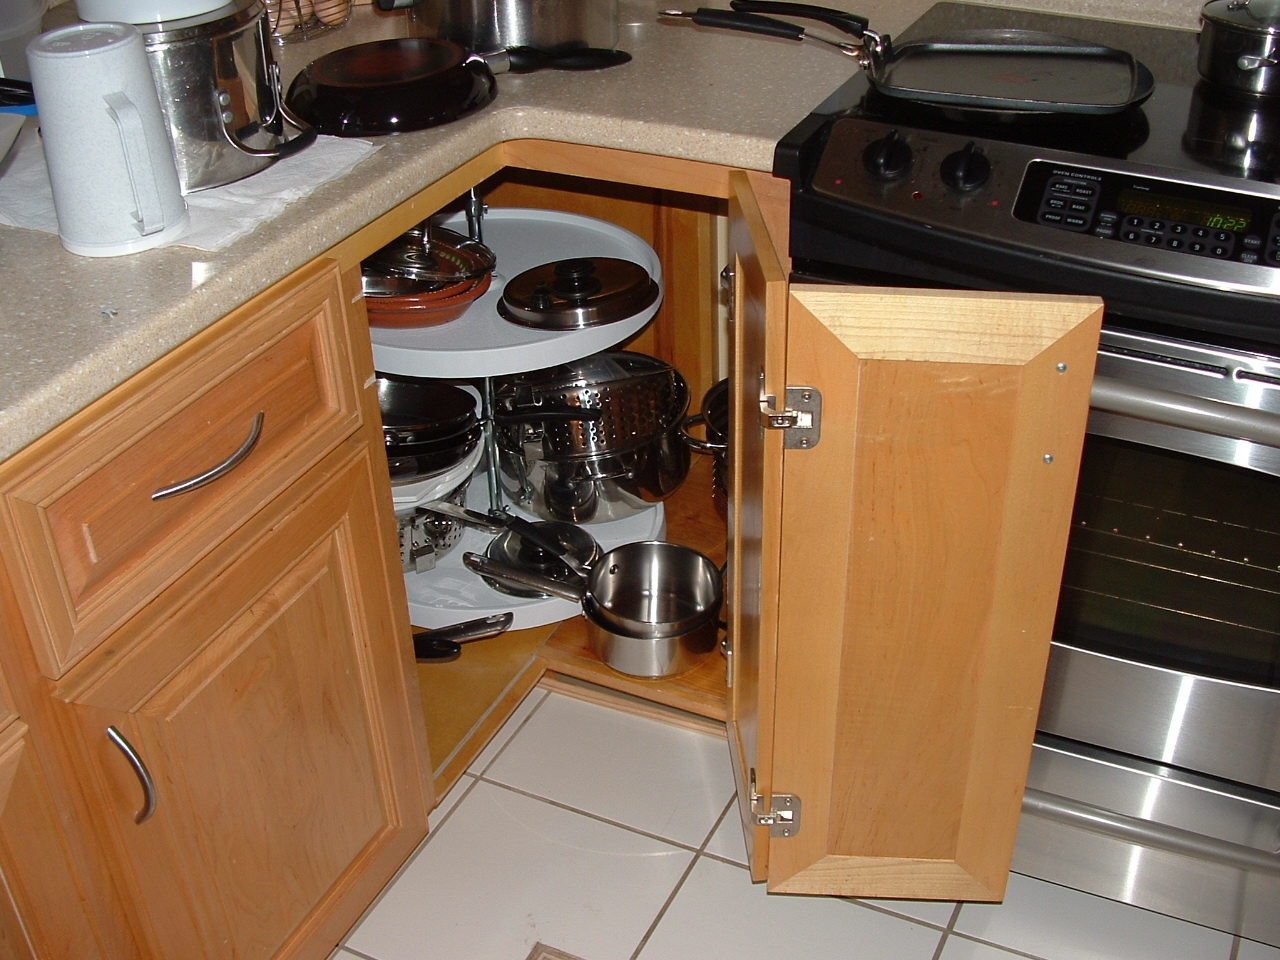 Awesome Electric Stove beside Wooden Cabinet plus Kitchen Cabinet Door Hinges and Usual Floortile